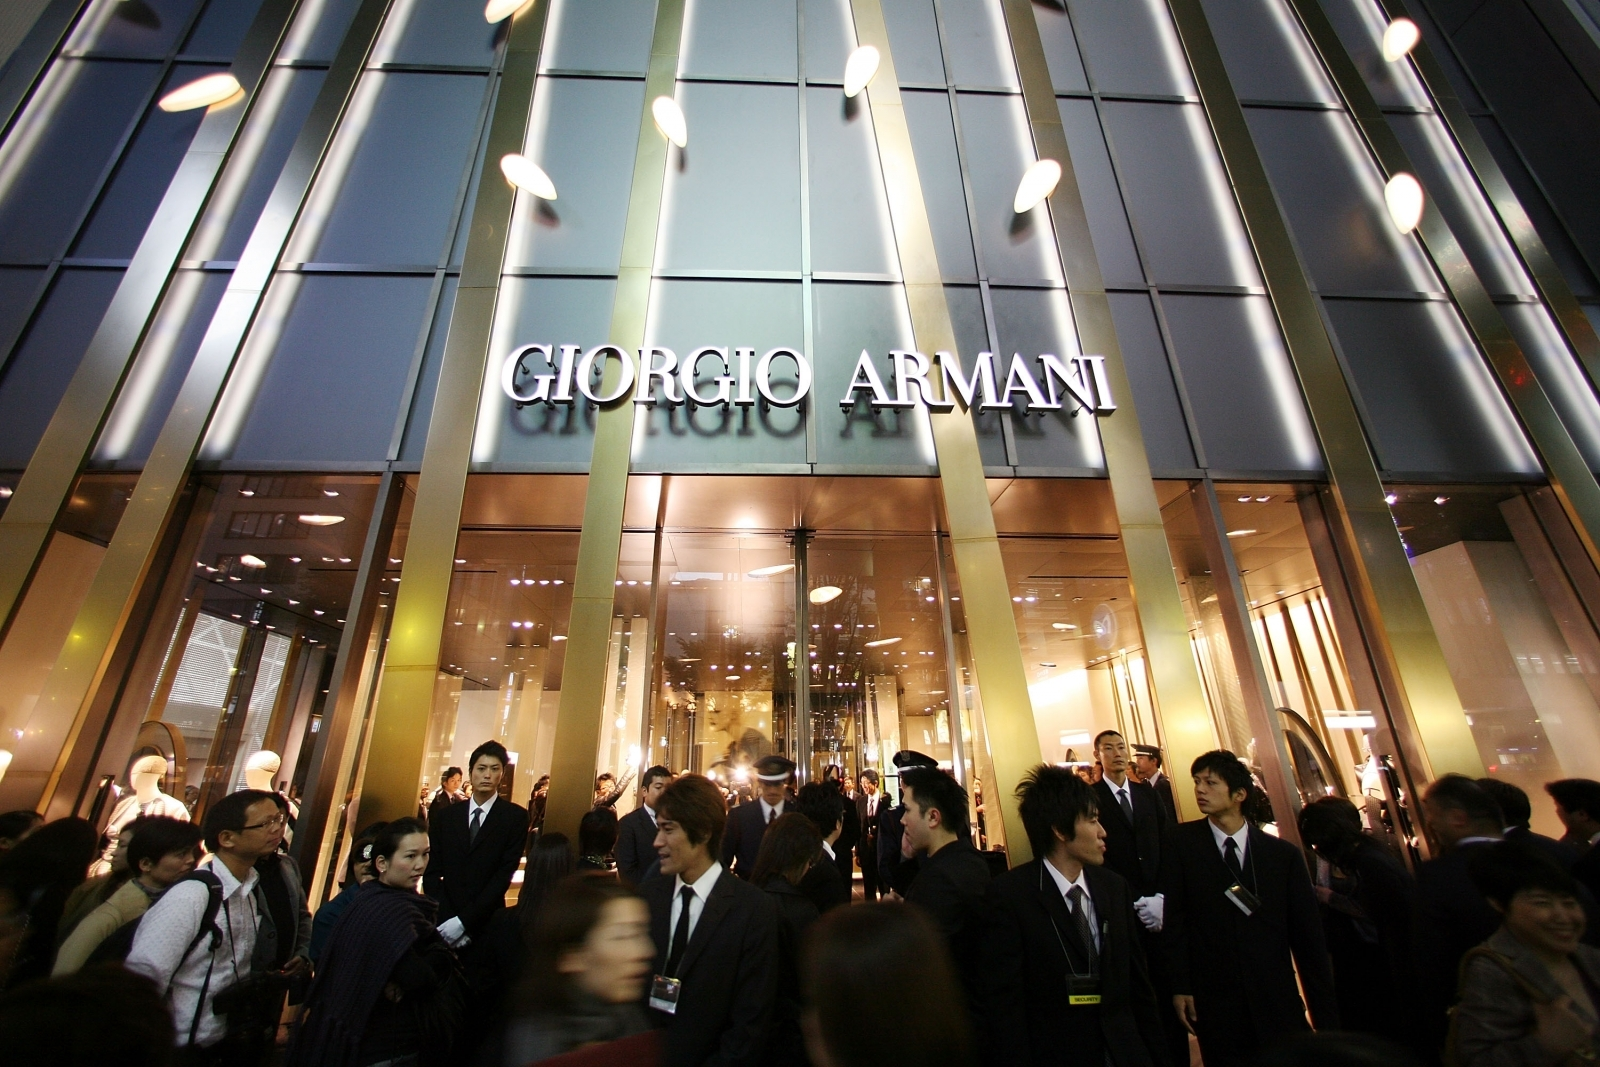 Outrage over Japanese primary school's £500 Armani uniform